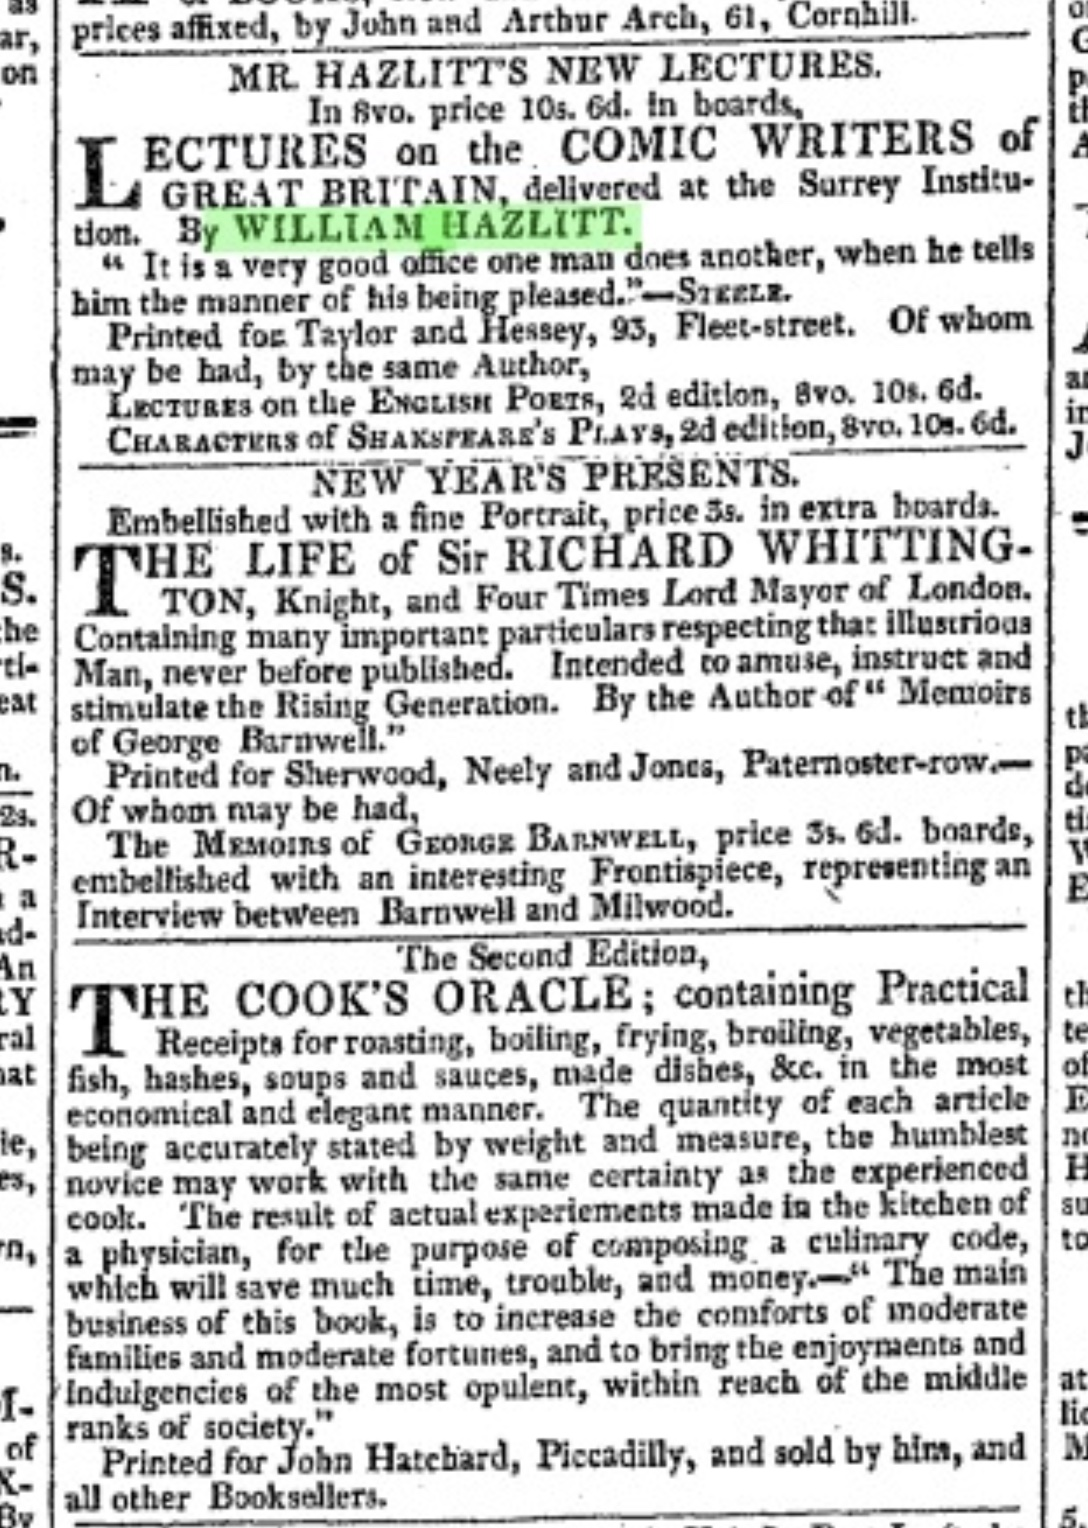 Hazlitt's lectures advertised in The Morning           Chronicle, 11 April 1819